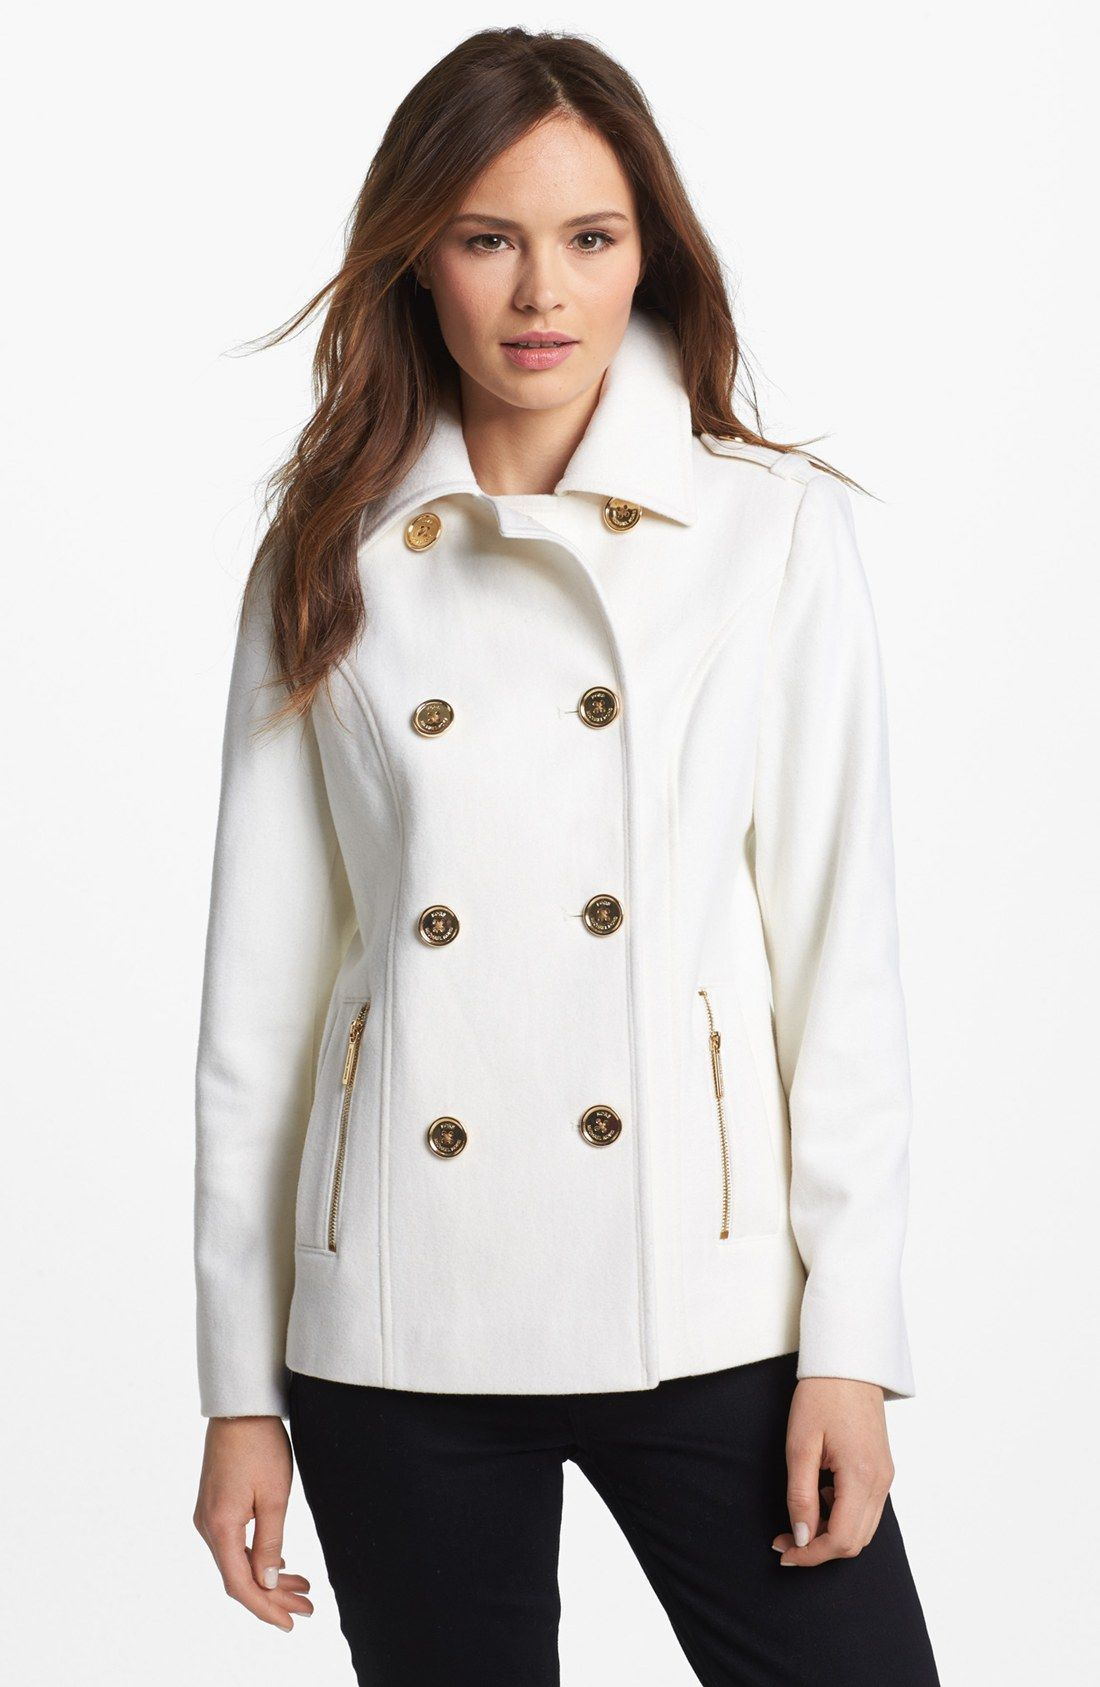 white-pea-coat-women | Pea Coat | Pinterest | Coats, Spring and ...